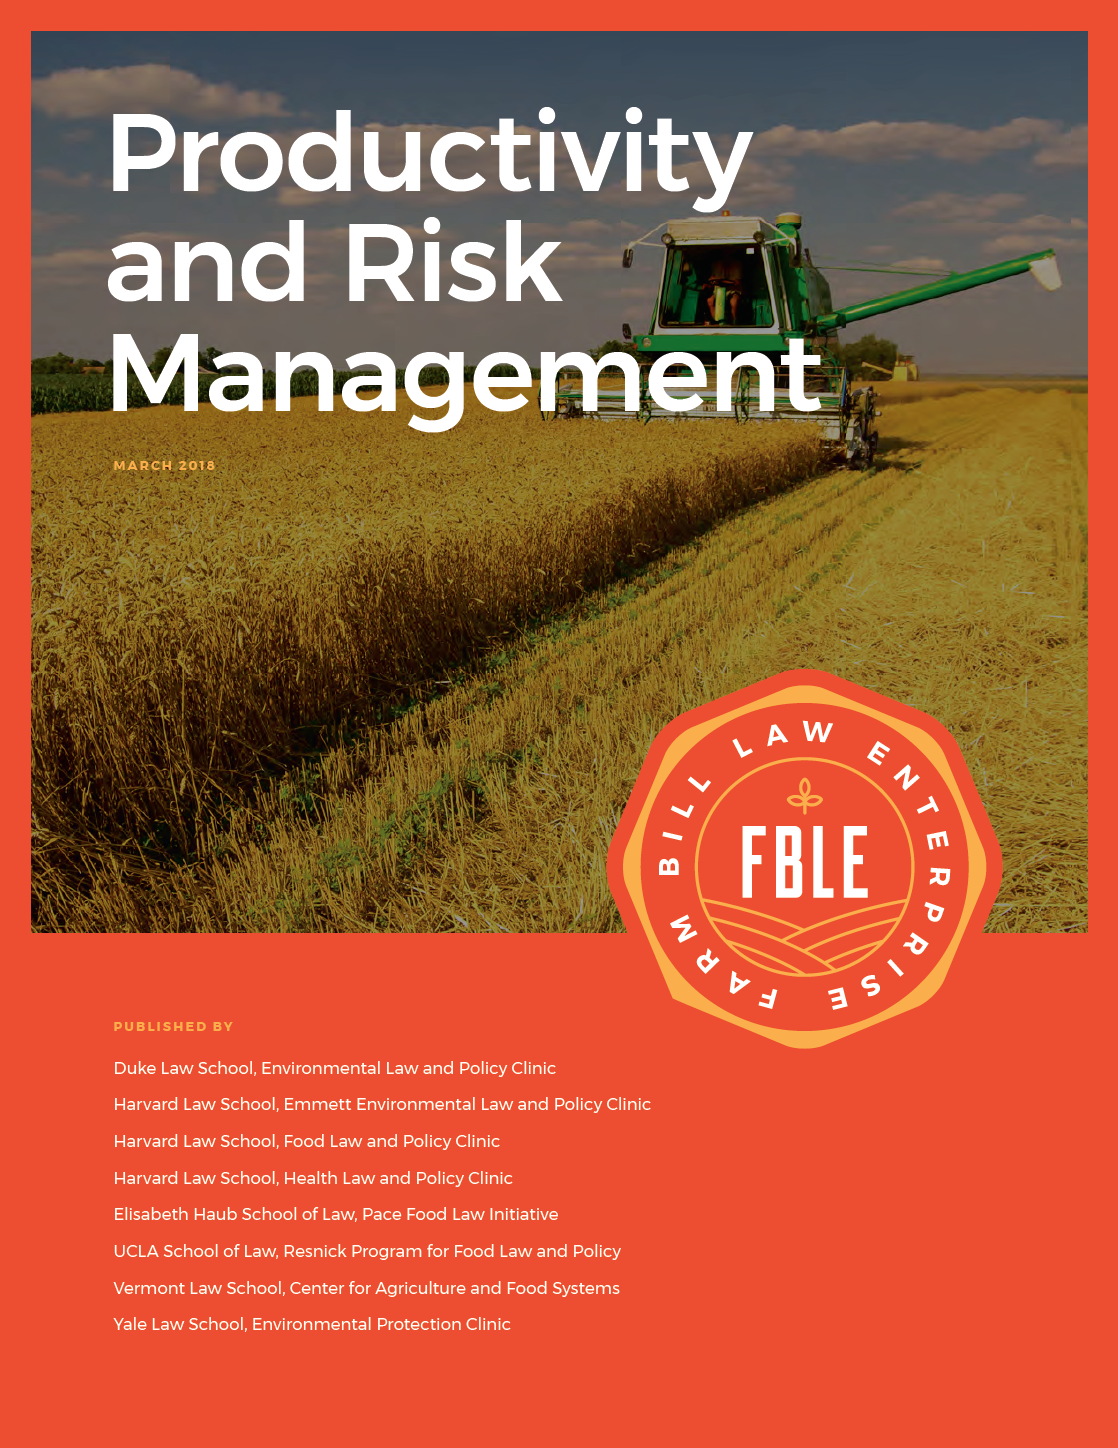 Productivity and Risk Management